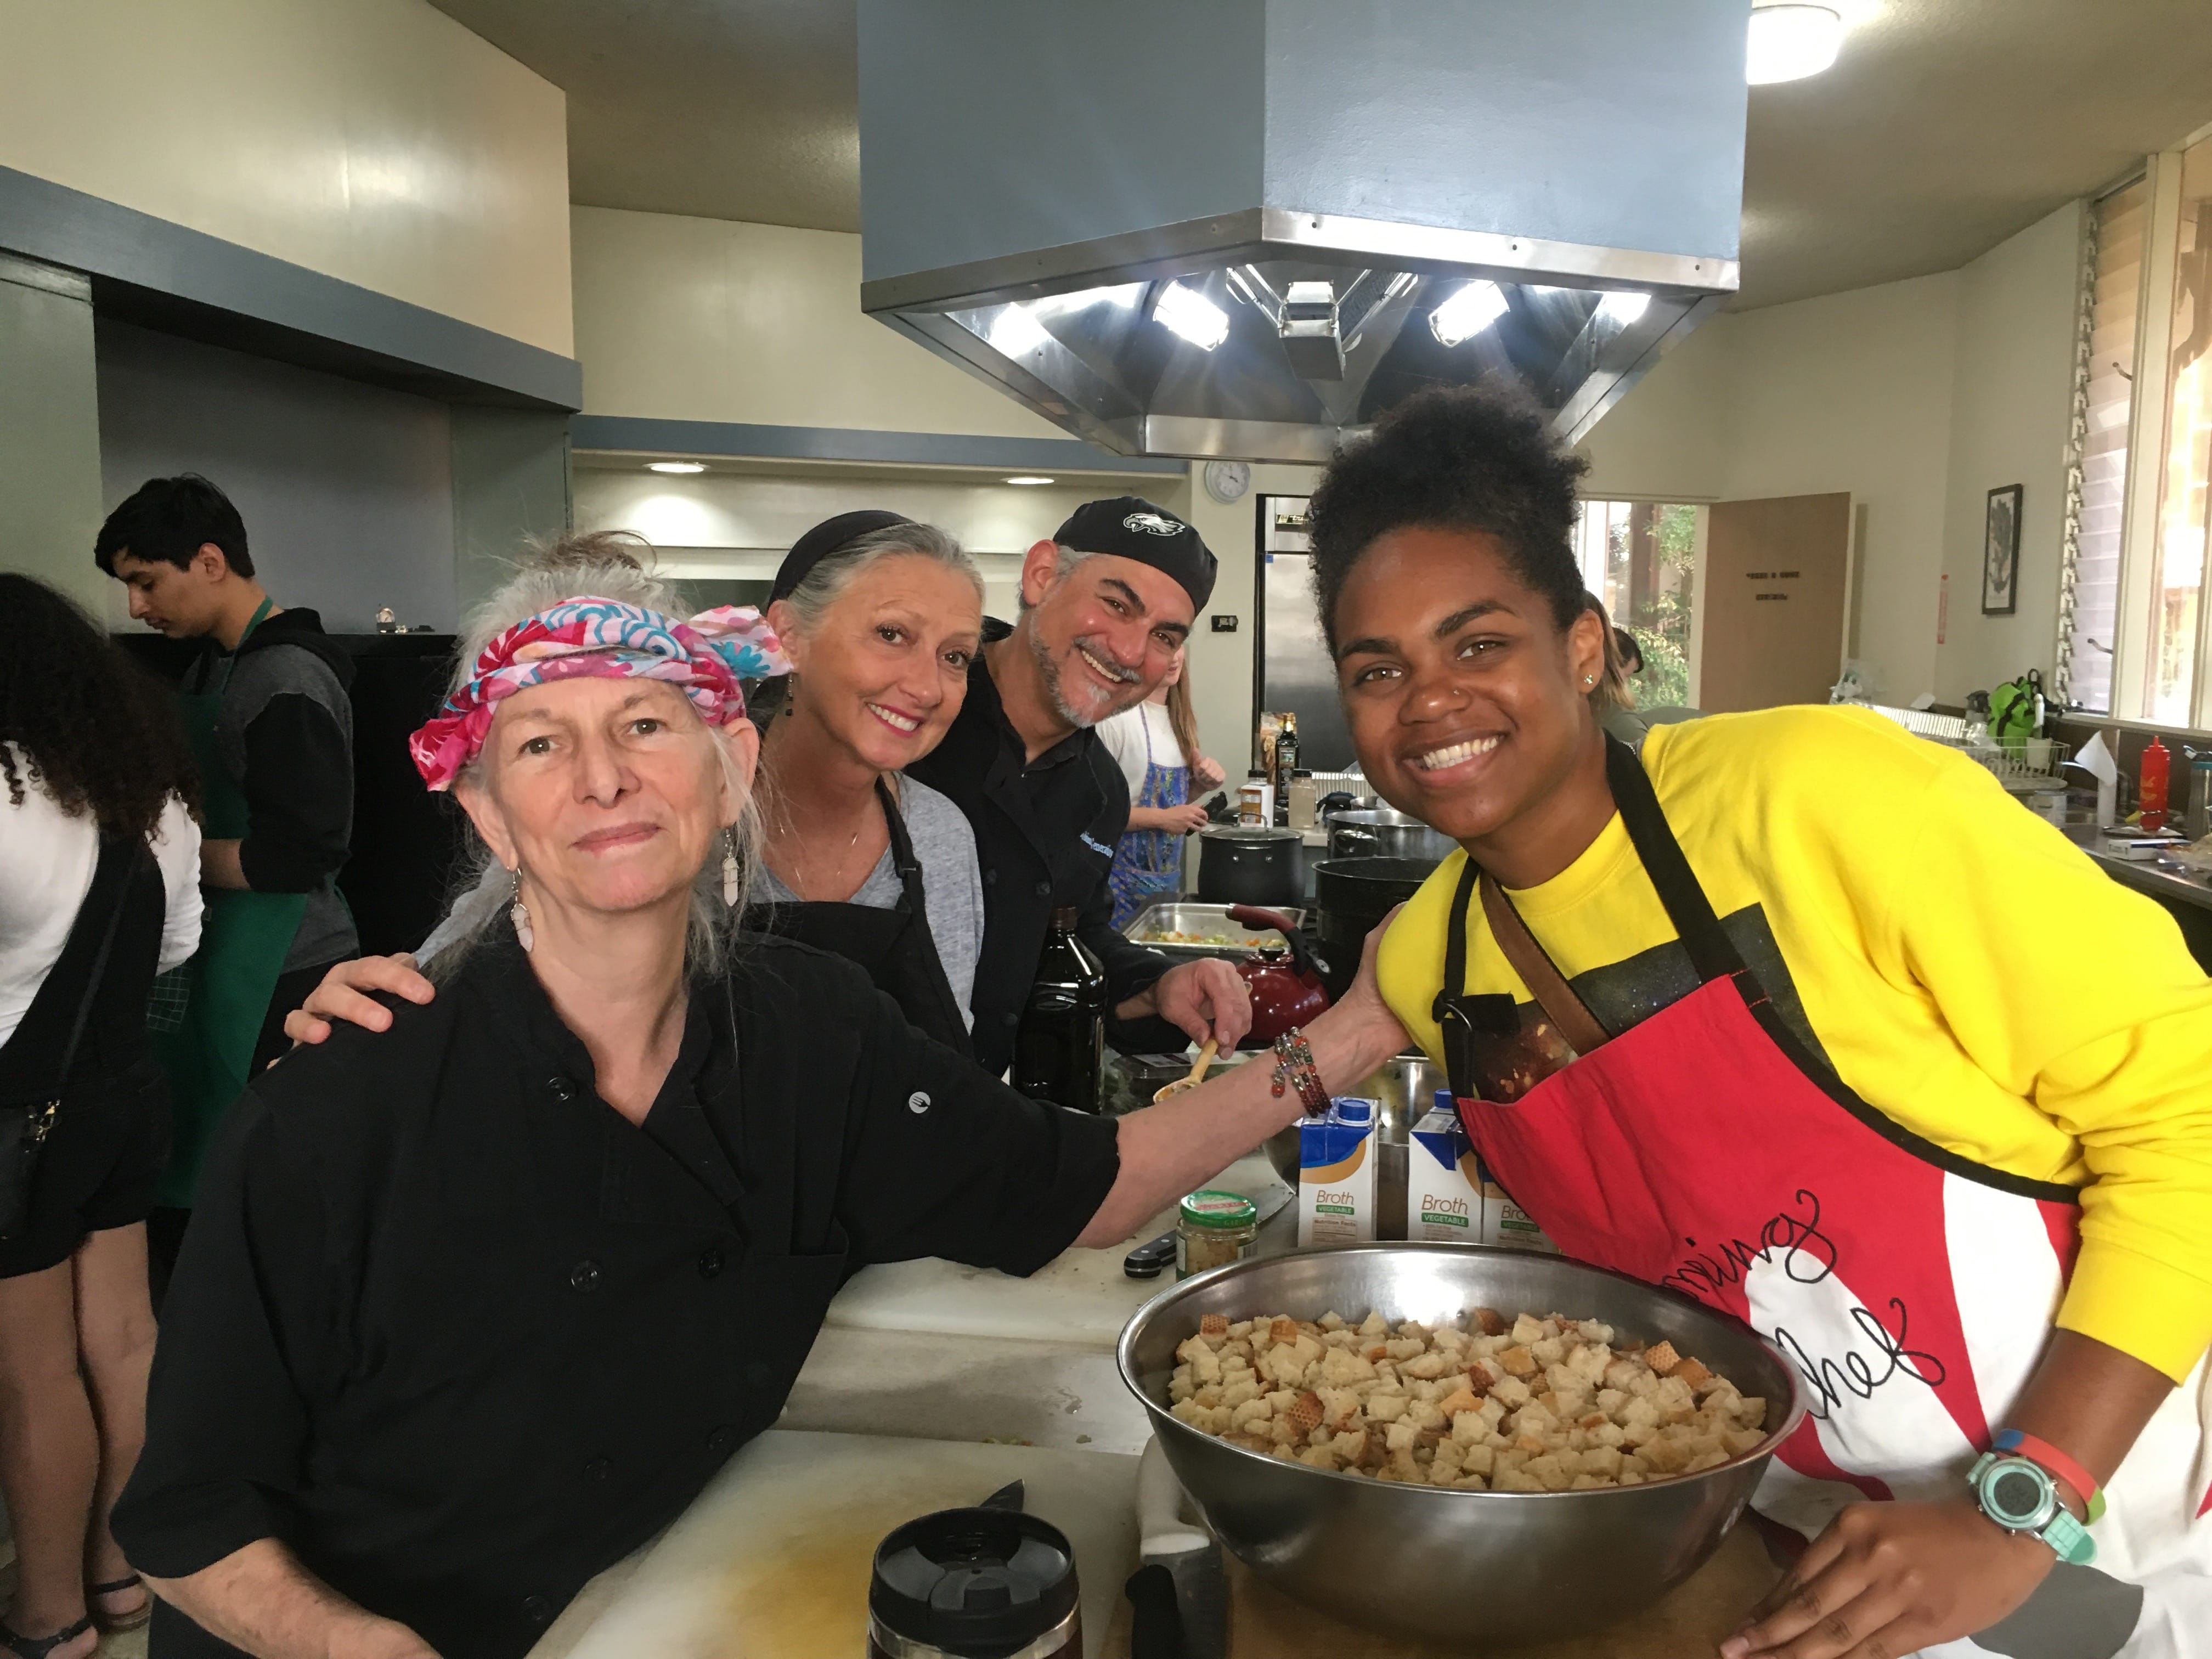 4 teachers smiling in a kitchen